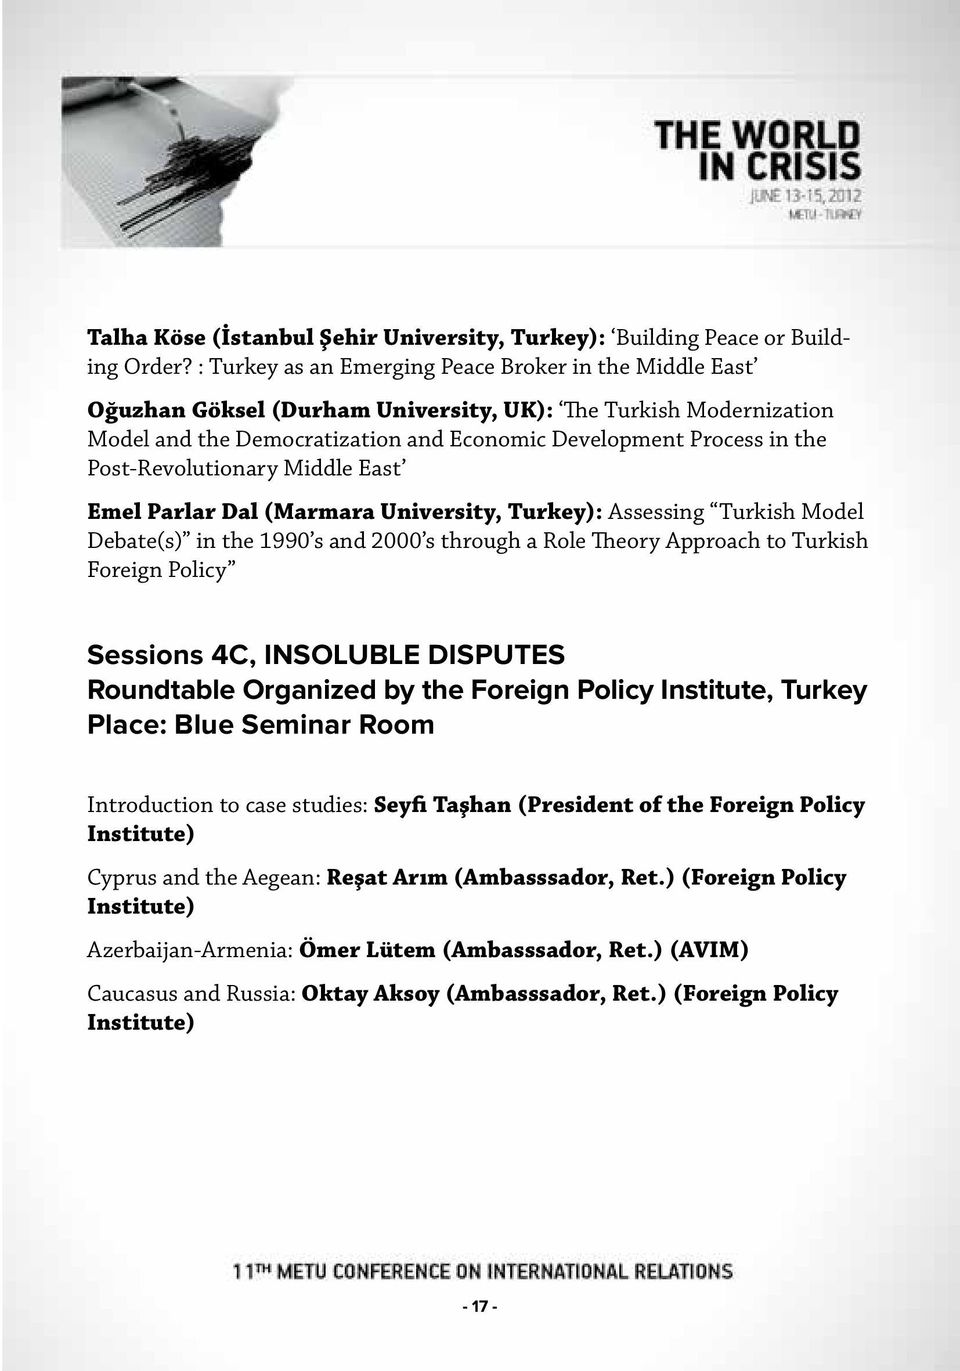 Post-Revolutionary Middle East Emel Parlar Dal (Marmara University, Turkey): Assessing Turkish Model Debate(s) in the 1990 s and 2000 s through a Role Theory Approach to Turkish Foreign Policy